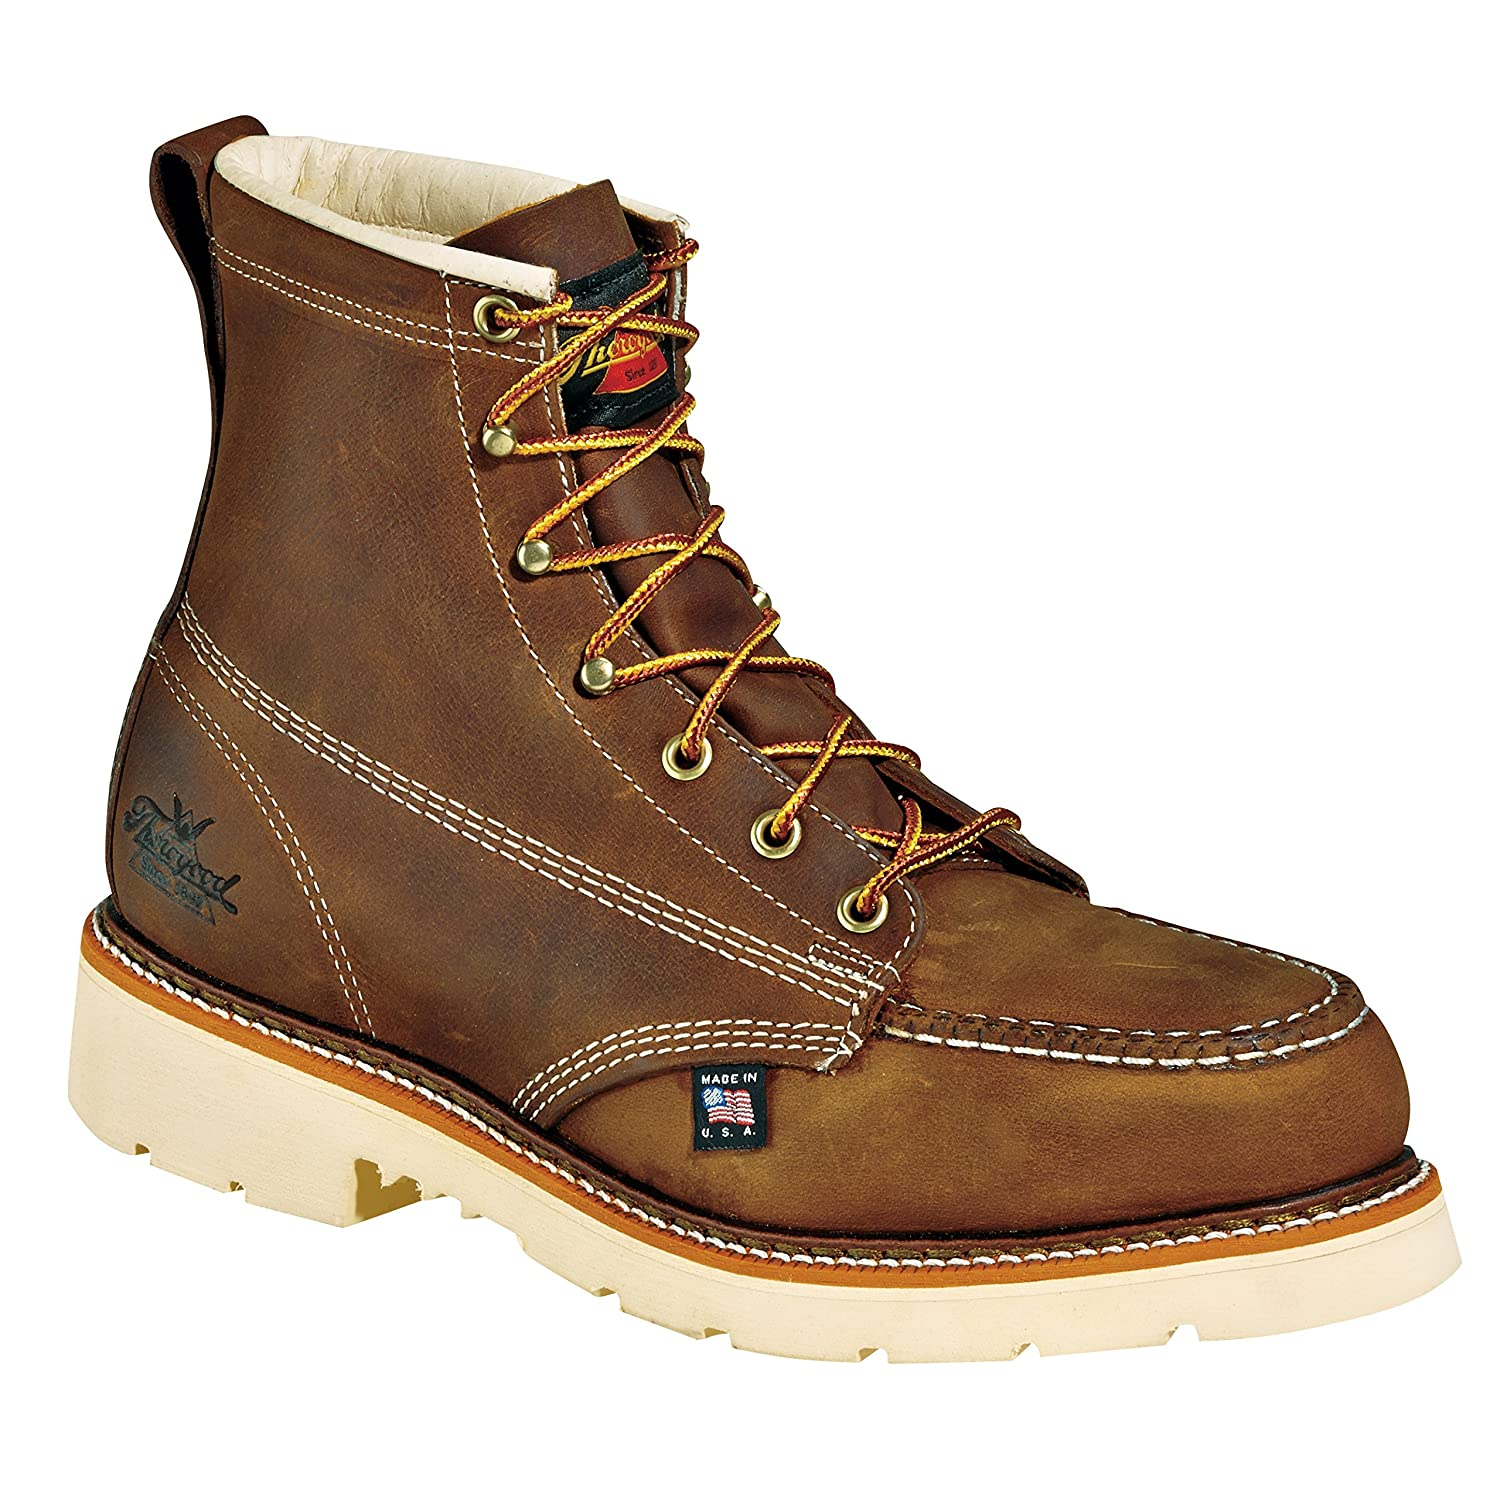 804-4375 Thorogood Men's Job PRO Safety Boots - Brown